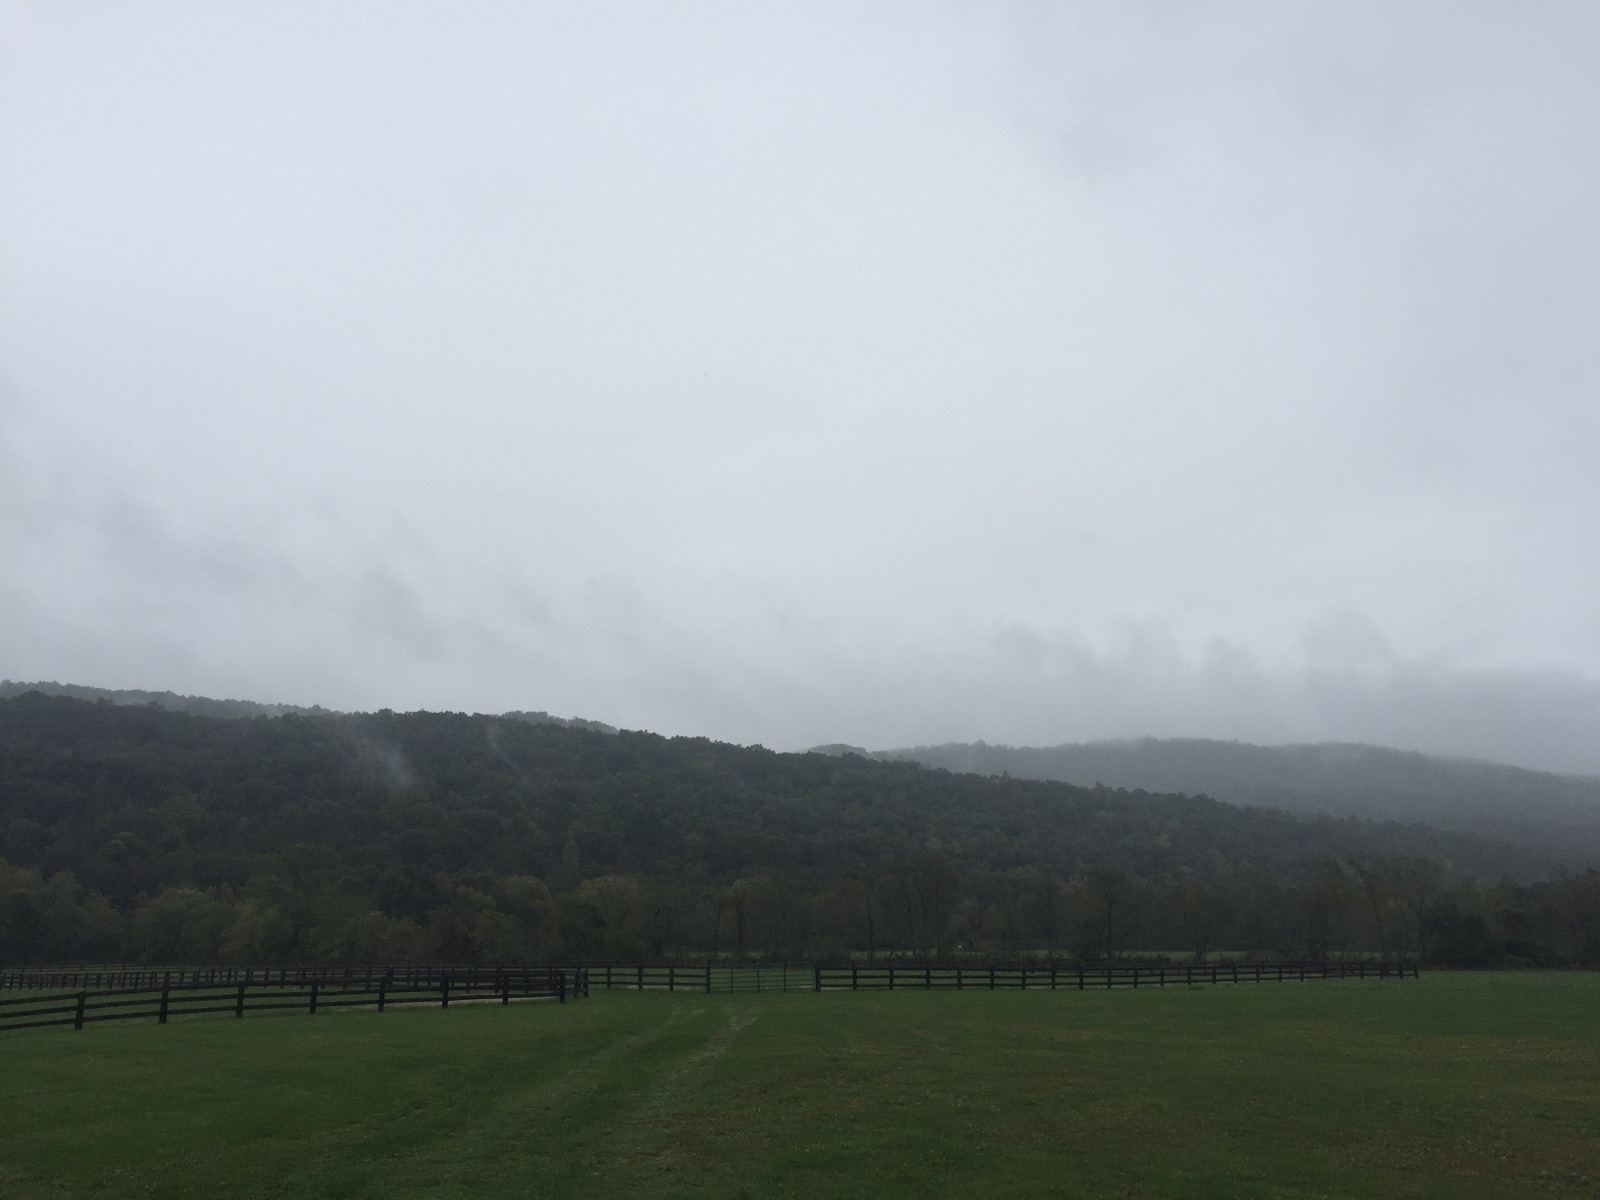 { Even with the rain and fog, these mountains still managed to be beautiful. }